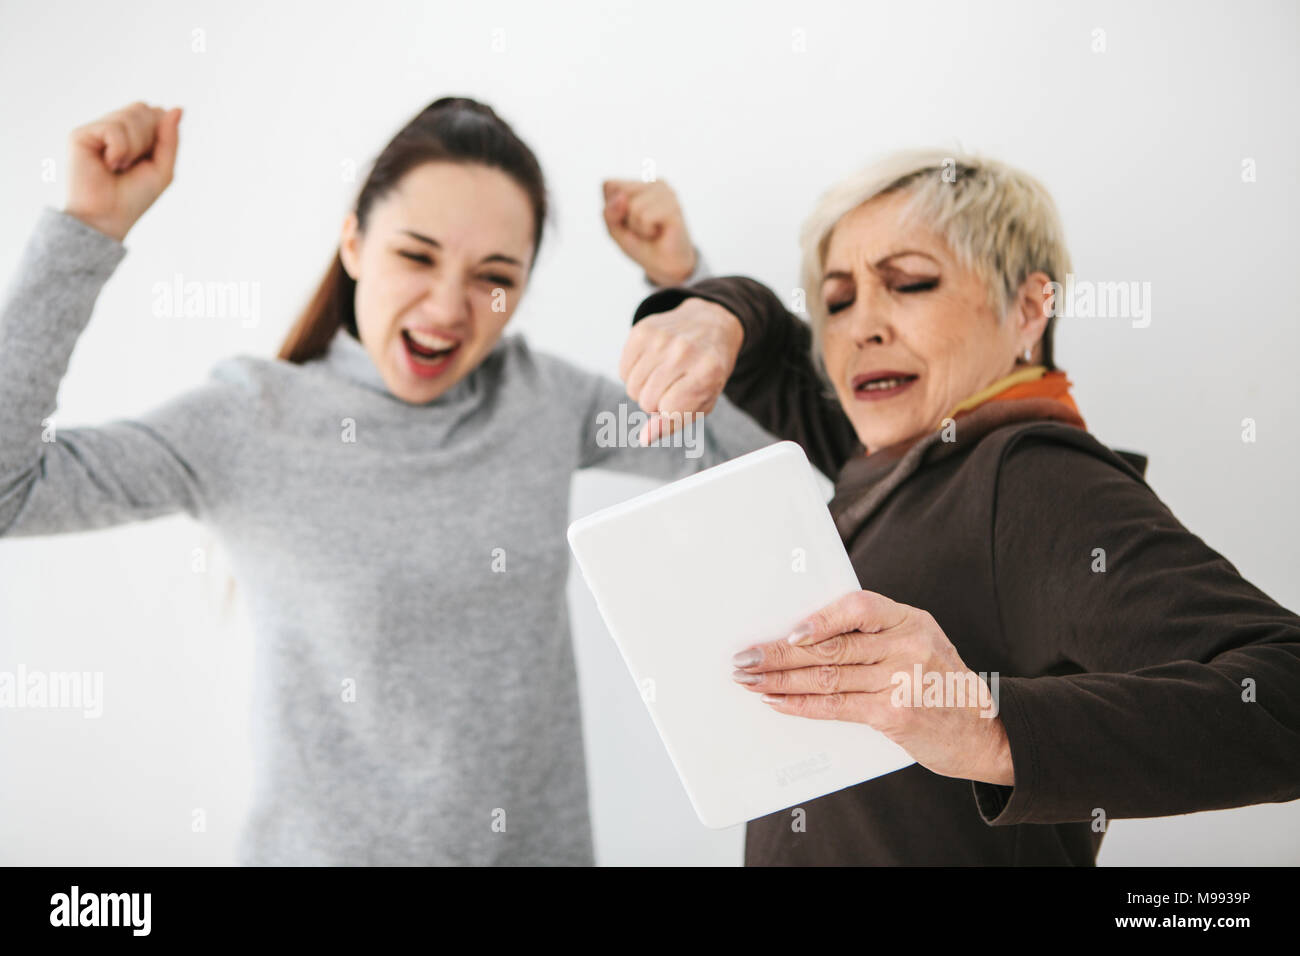 A young girl and an elderly woman look at something interesting on the tablet and show emotions. Communication, joint pastime of young and old people. - Stock Image